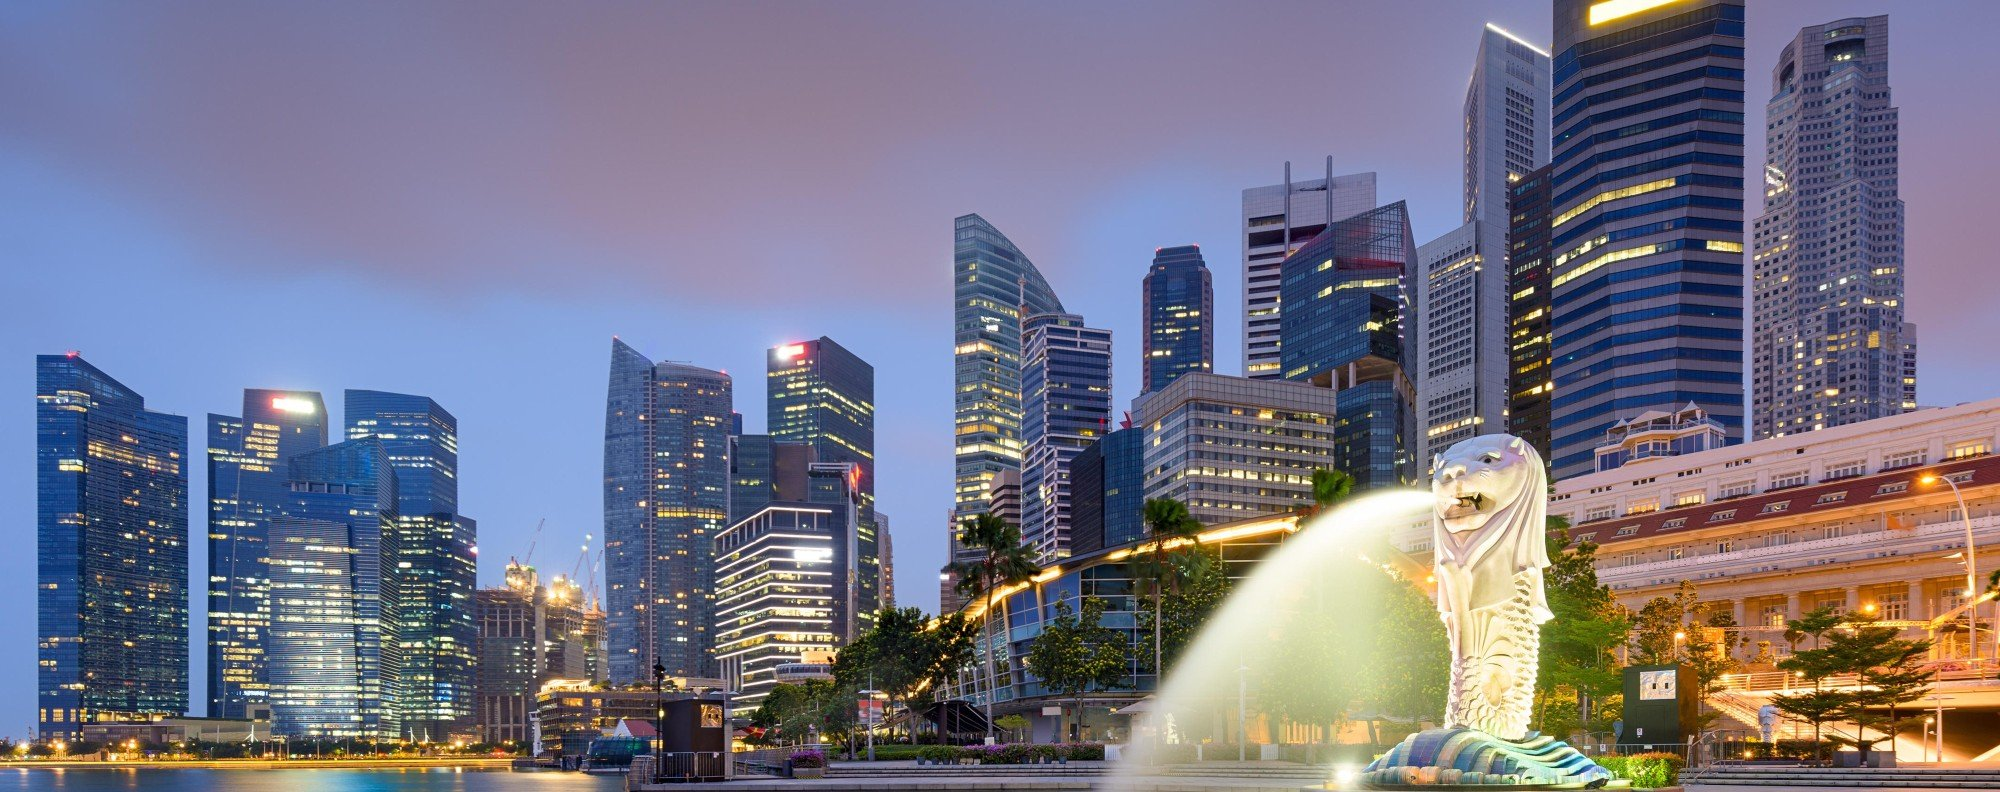 The Singapore skyline. Photo: Handout